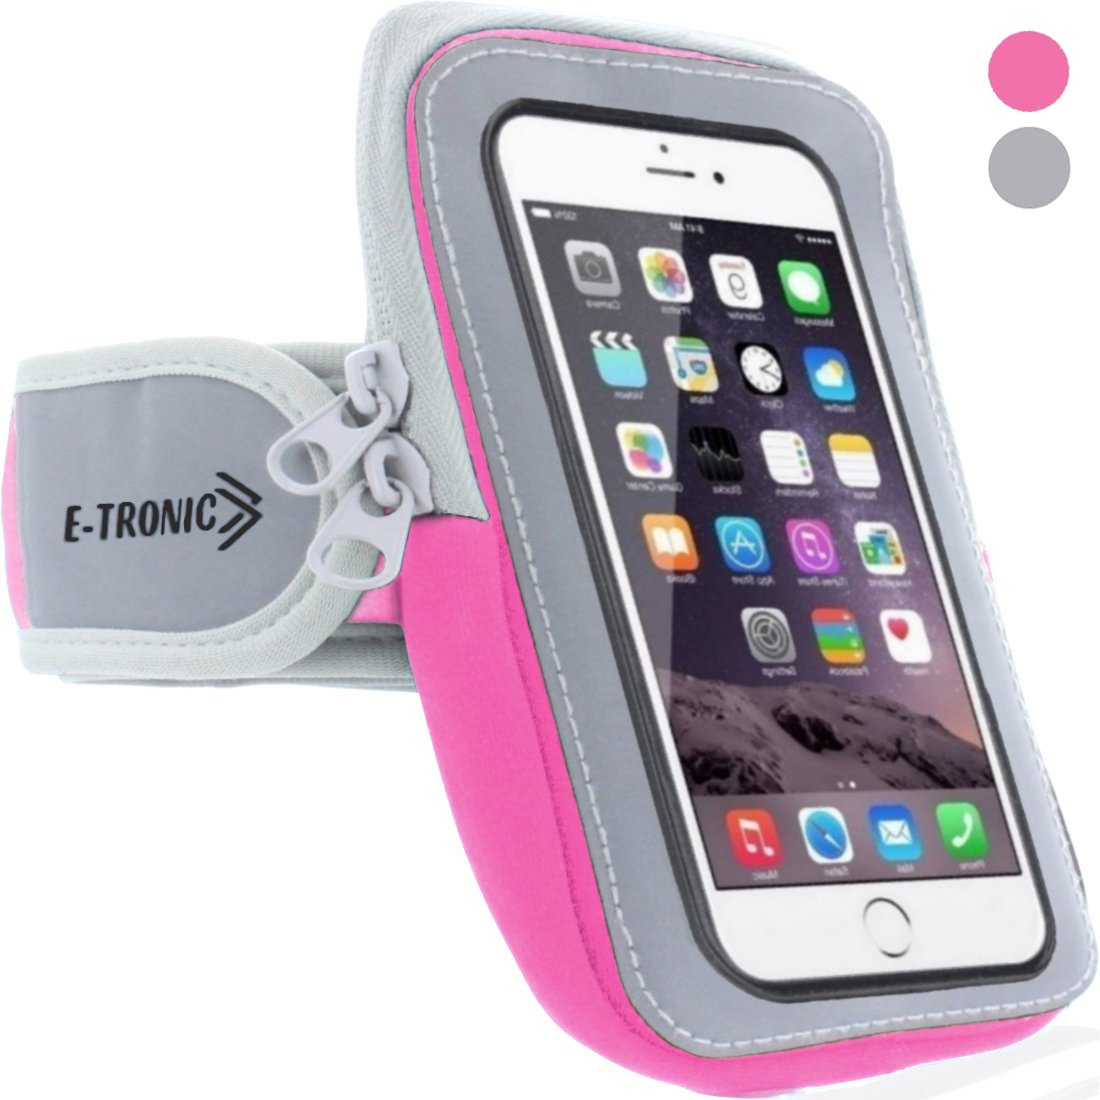 Sports Armband: Cell Phone Holder Case Arm Band Strap With Zipper Pouch/ Mobile Exercise Running Workout For Apple iPhone 6 6S 7 Plus Touch Android Samsung Galaxy S5 S6 S7 Note 4 5 Edge LG HTC Pixel E Tronic Edge 4326454432